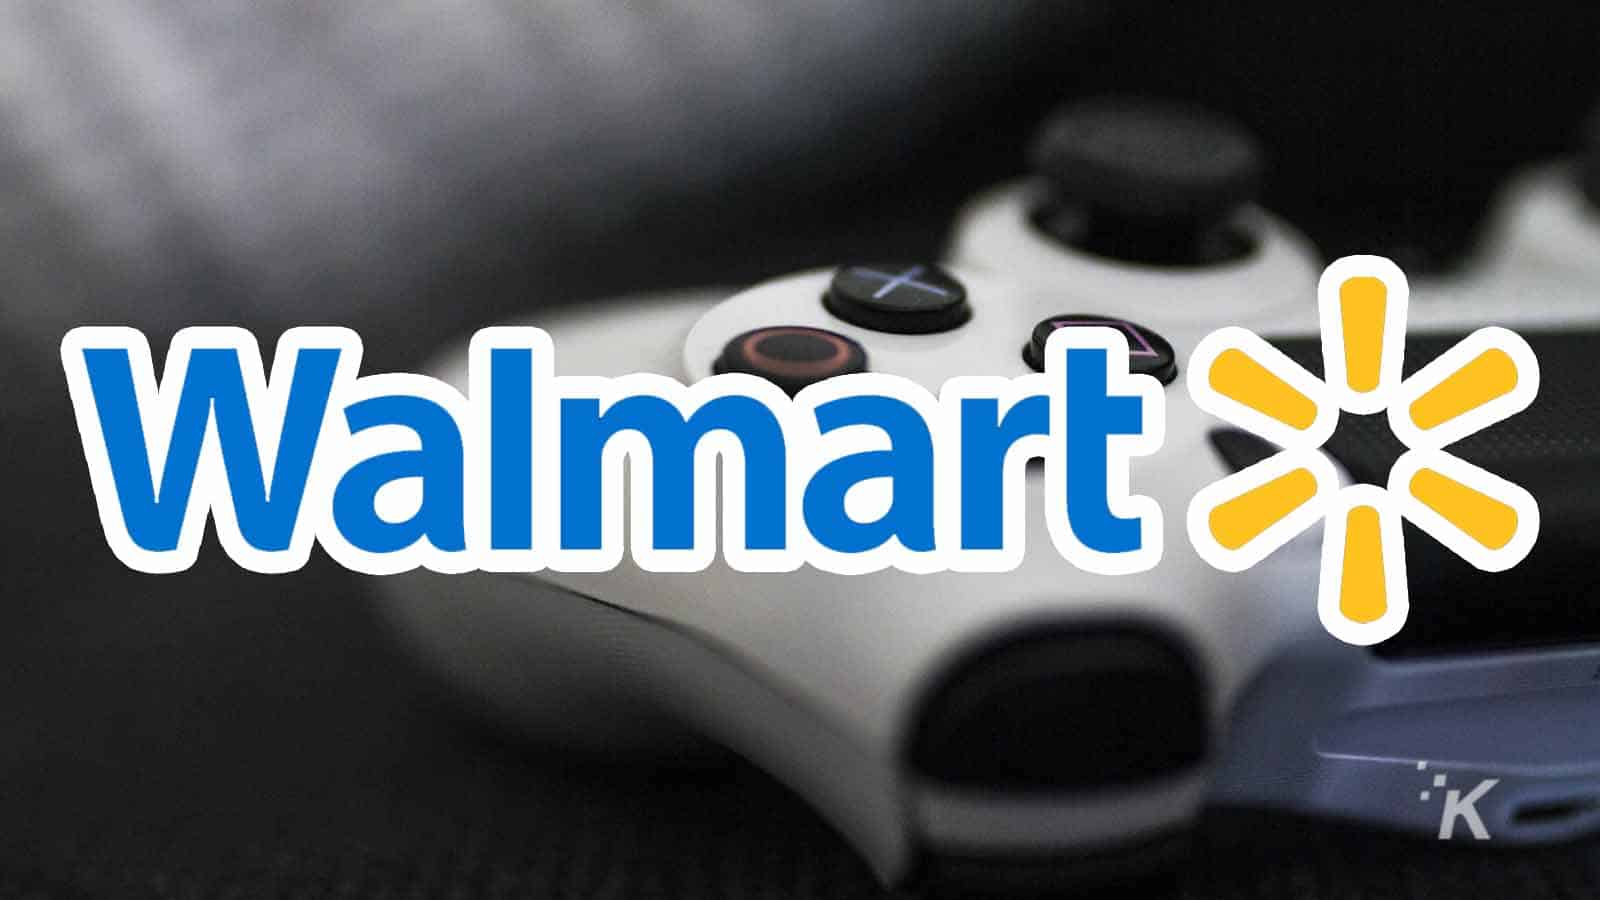 walmart game streaming with controller in the background